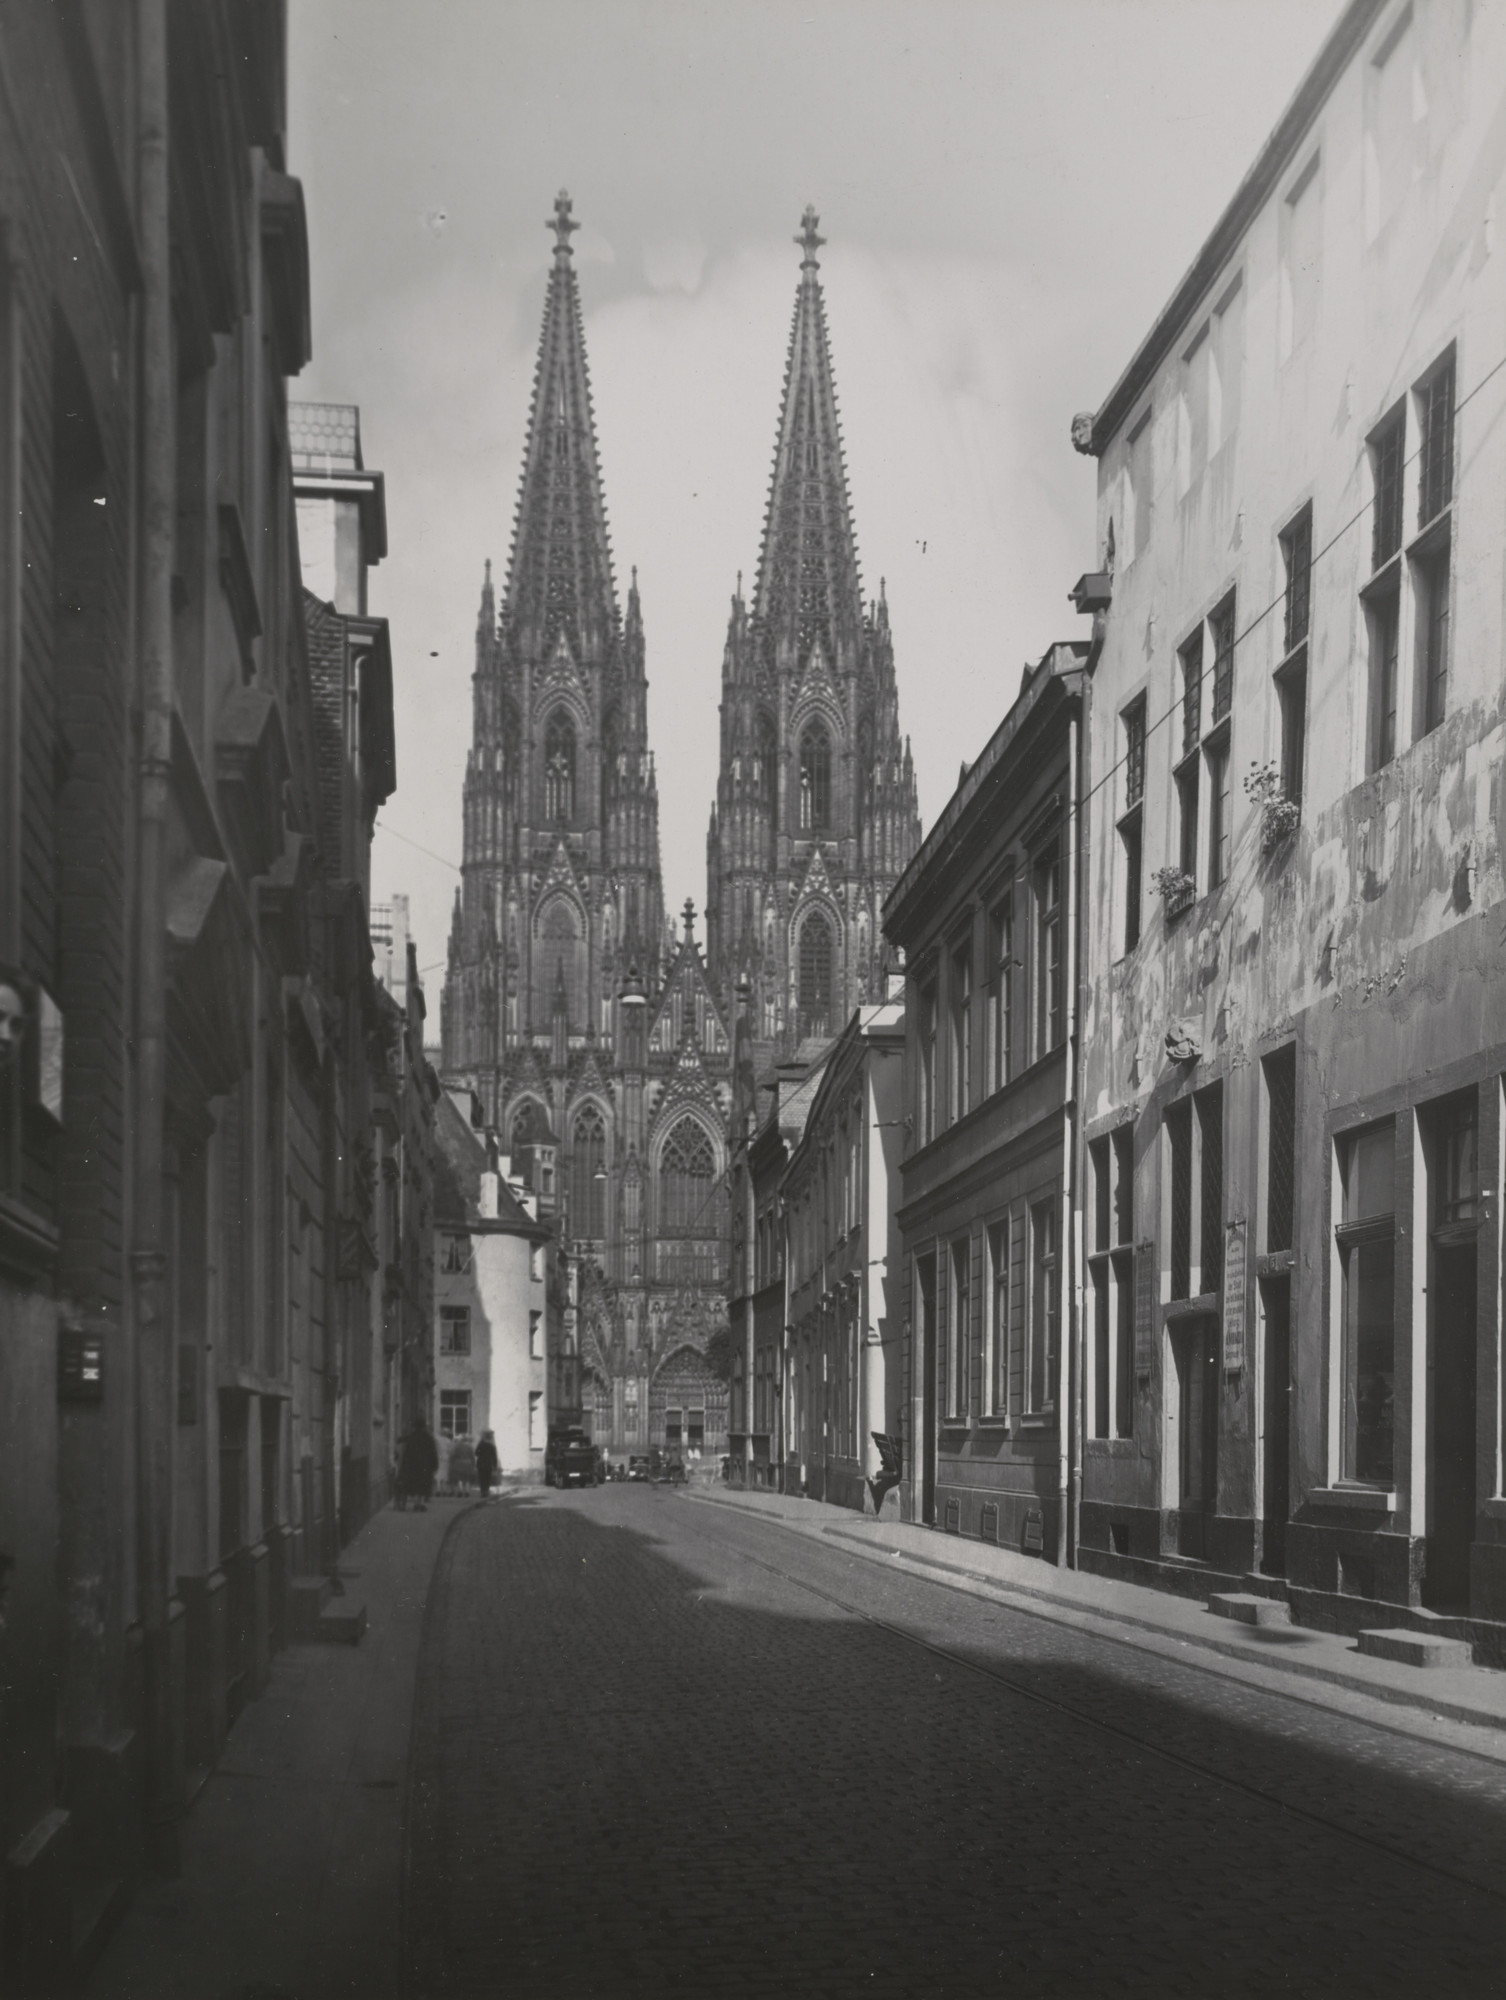 August Sander. View of the Old City. 1924